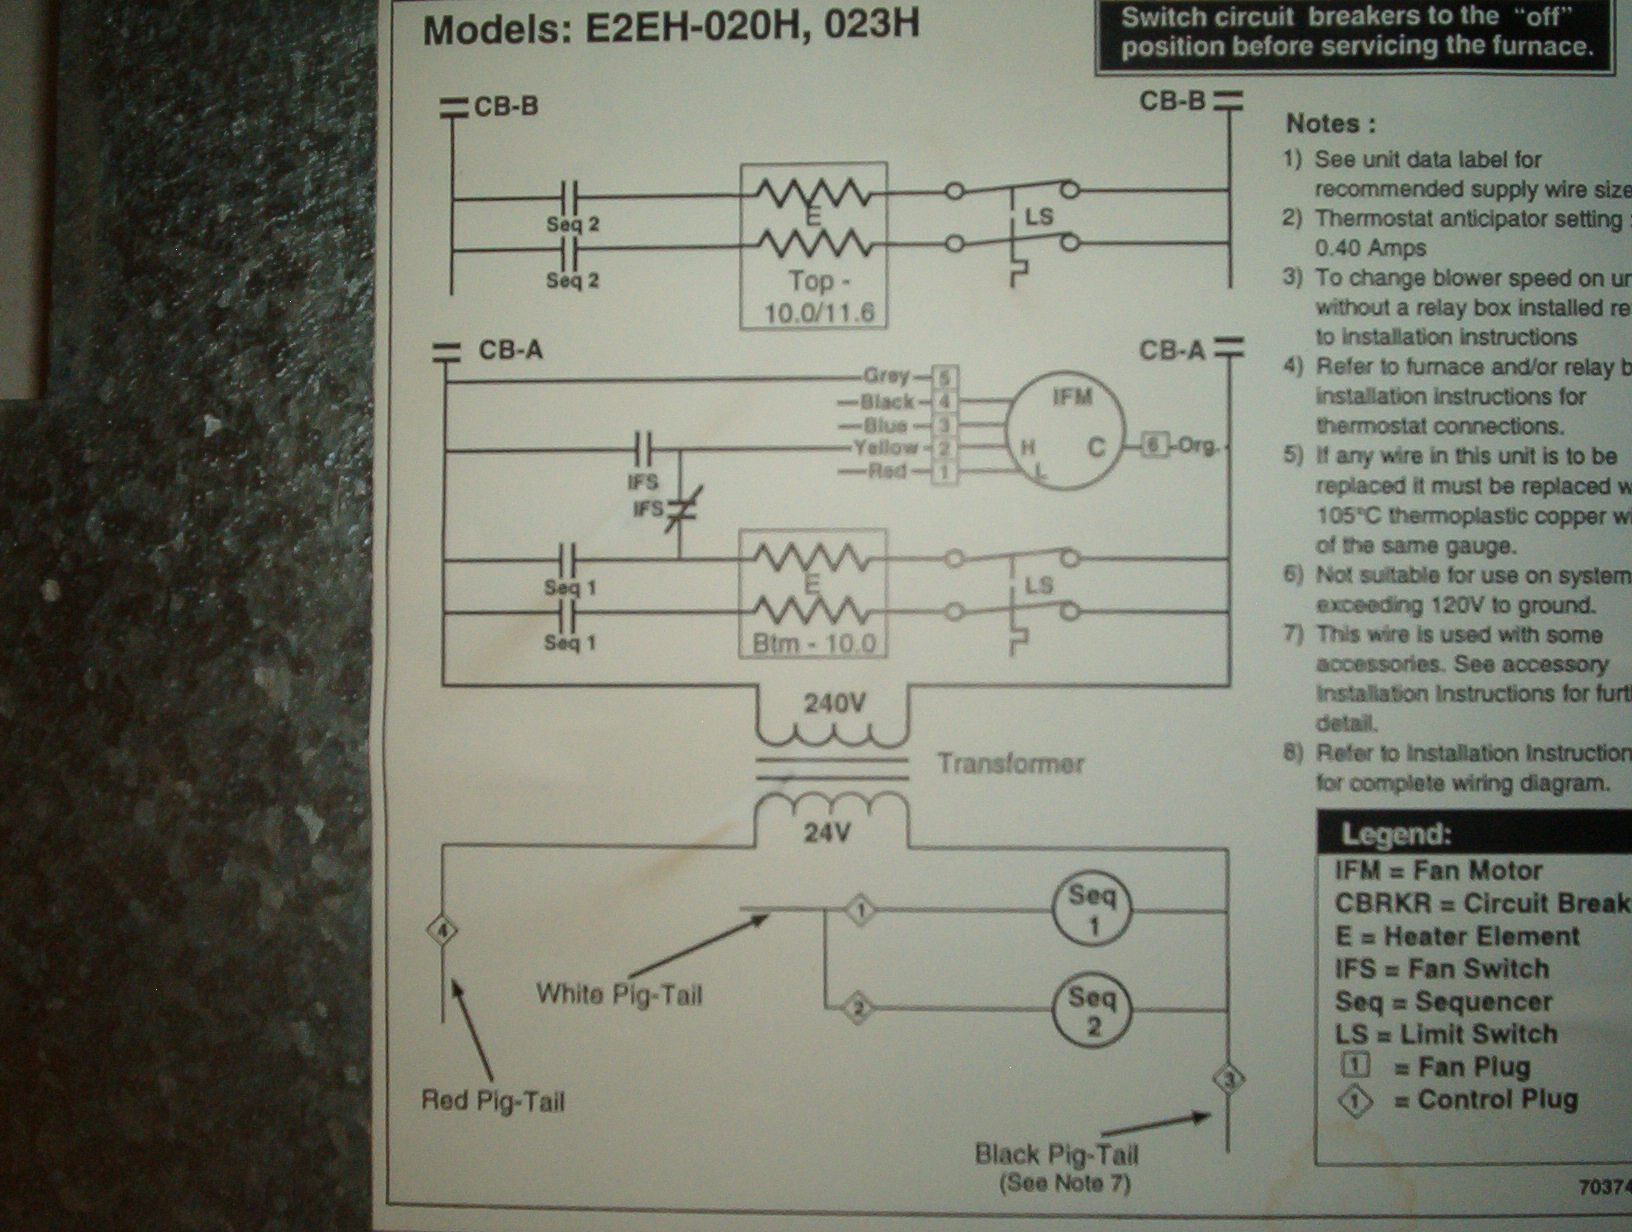 E2eb 020ha Miller Furnace Wiring Diagram Diagrams On Installation Hvac Components How Does I Have A Nordyne Electric Model E2eh And When Set E